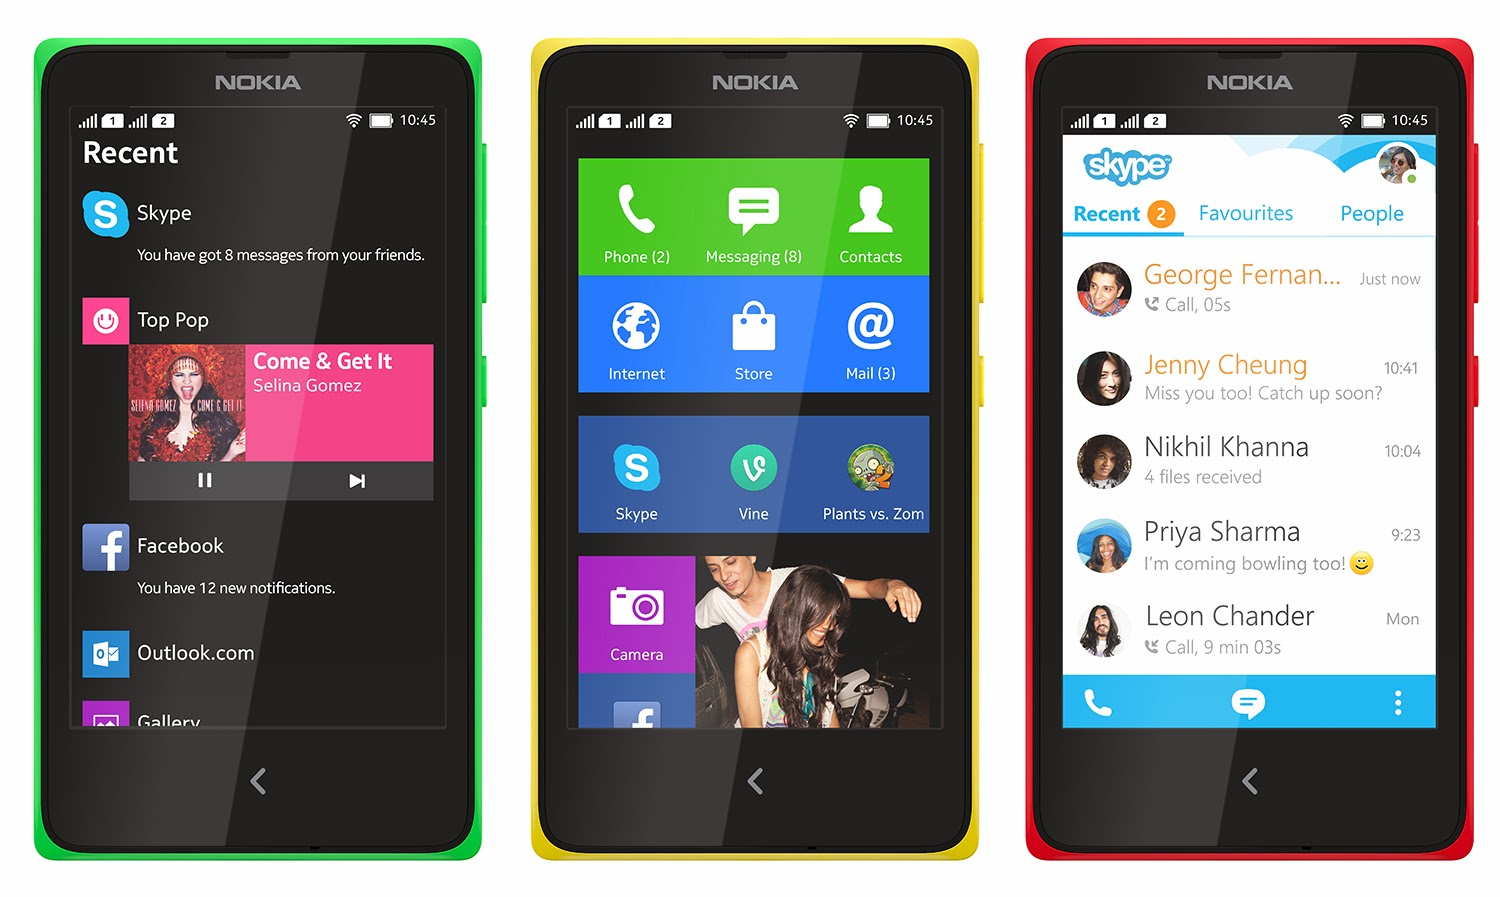 Nokia X Android smartphone  Nokia X Android smartphone launched at Rs 8,599 in India, Nokia on Monday, launched Nokia X, based on the Android OS,